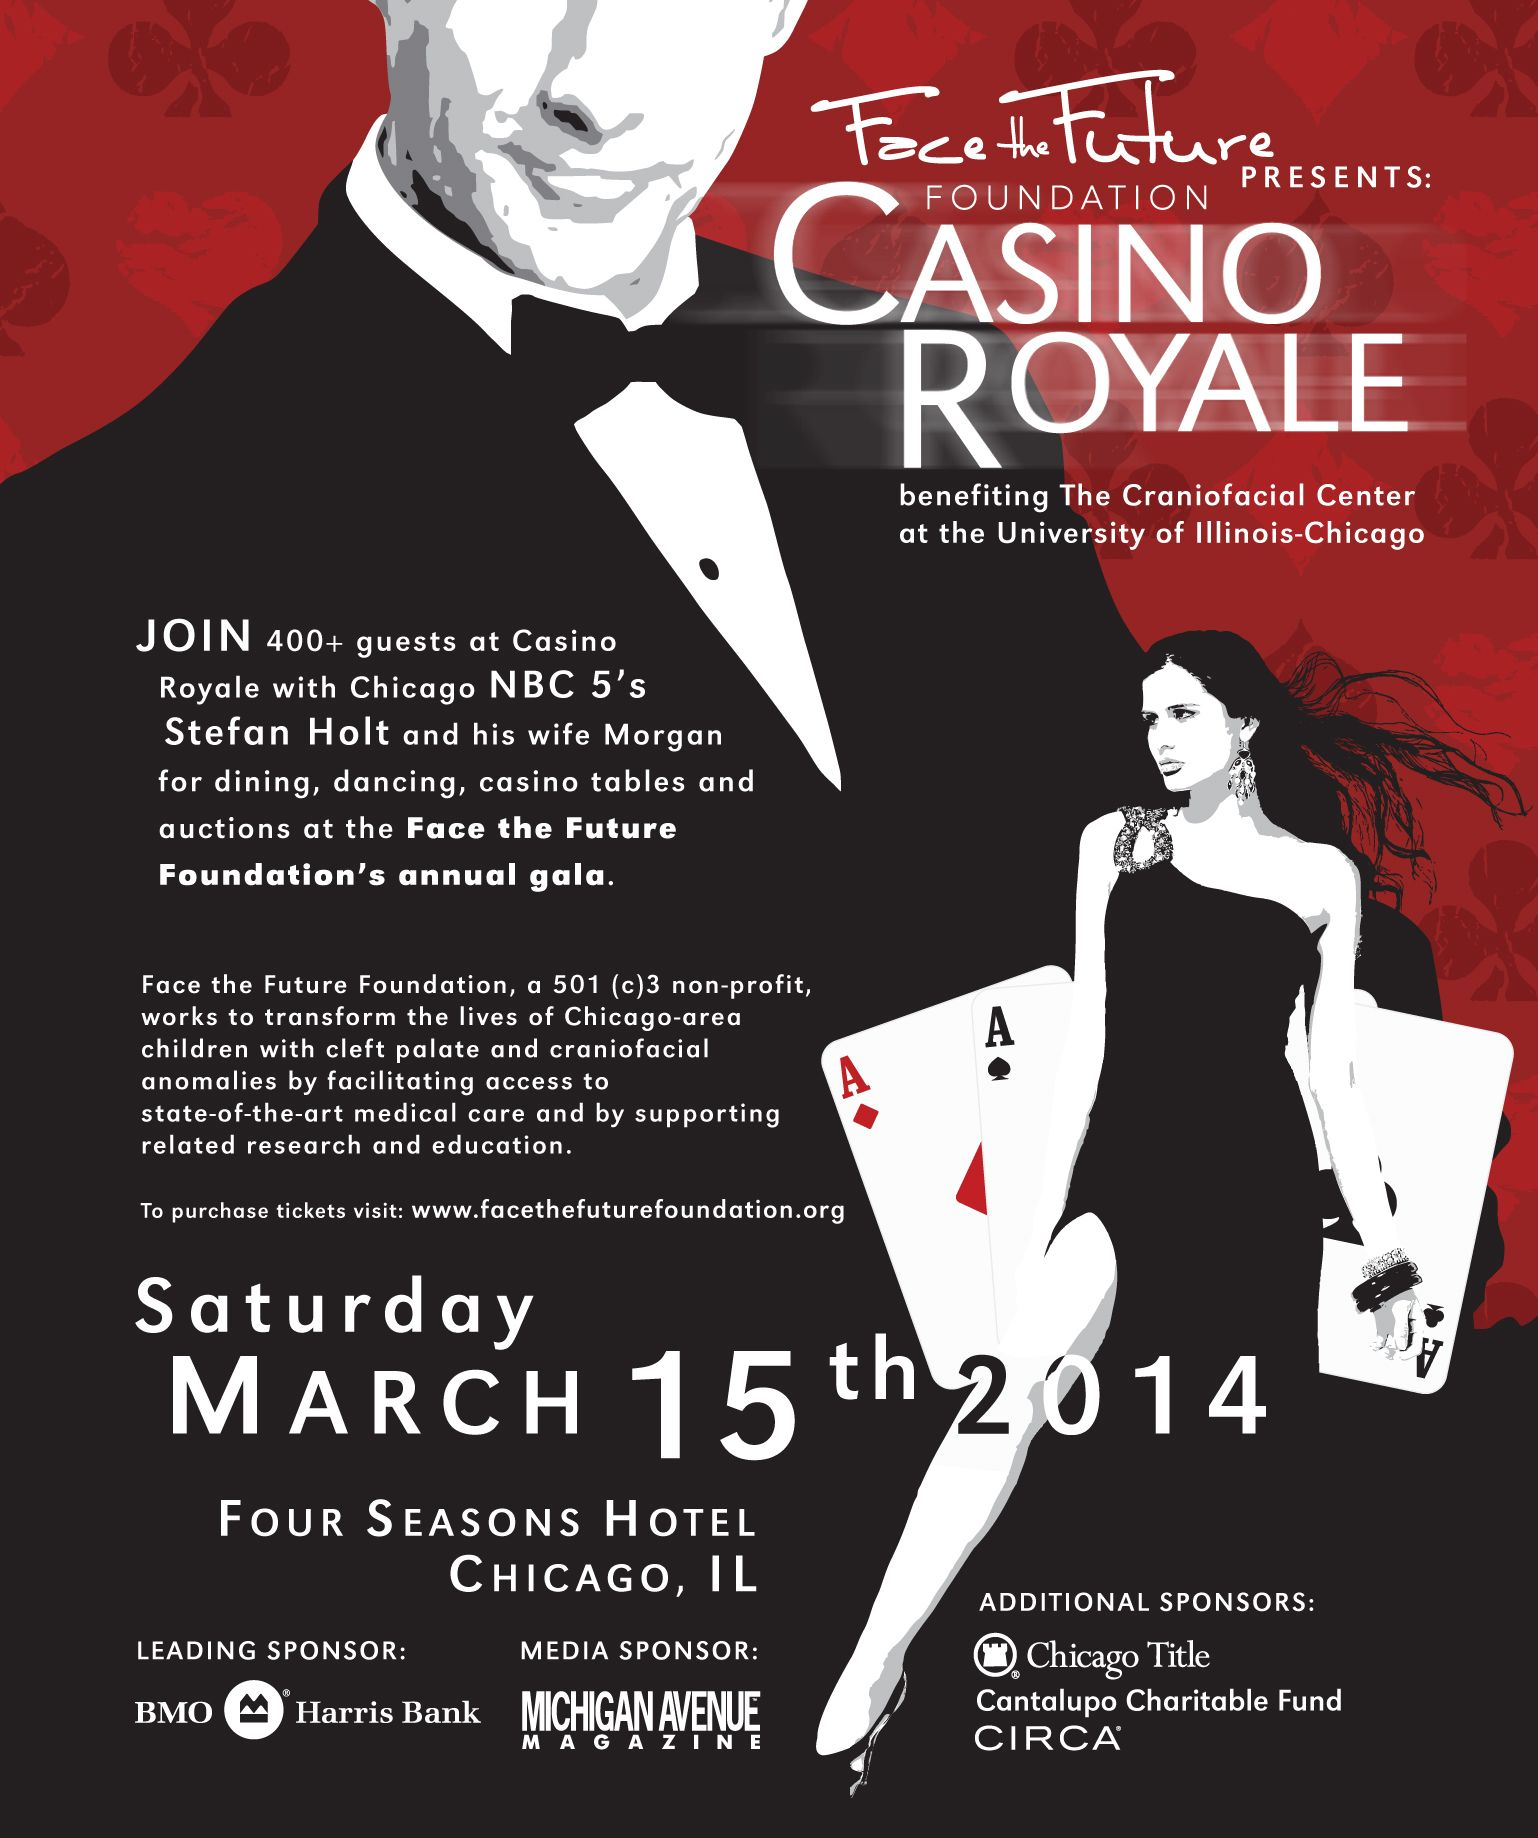 Casino Royale Theme Party Invitations pascalgoespop